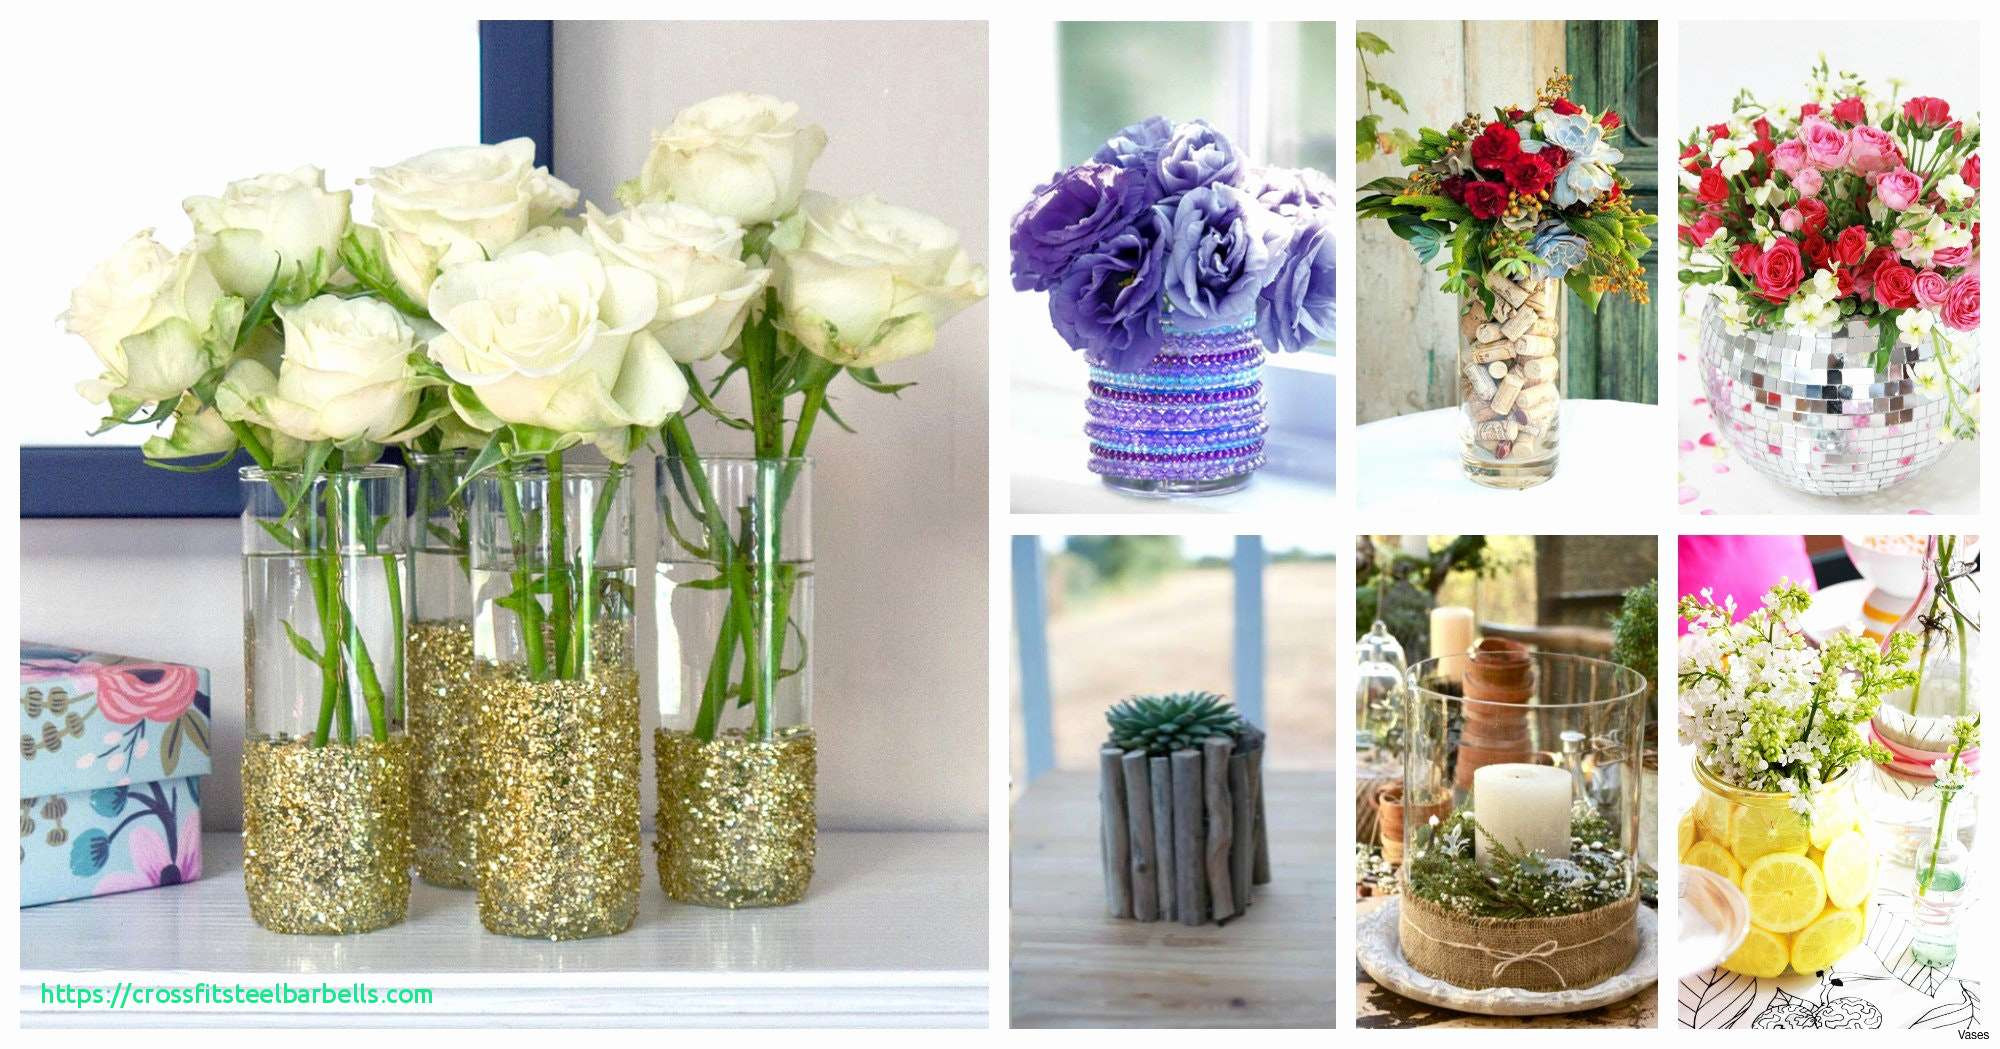 Diy Flower Vase Decoration Of Flower Vase Decoration with Clay Flowers Healthy with Interior Decor Flower Vase Best Of Vase Decoration Beau Vases Flower Vase Decoration Clay Cl I